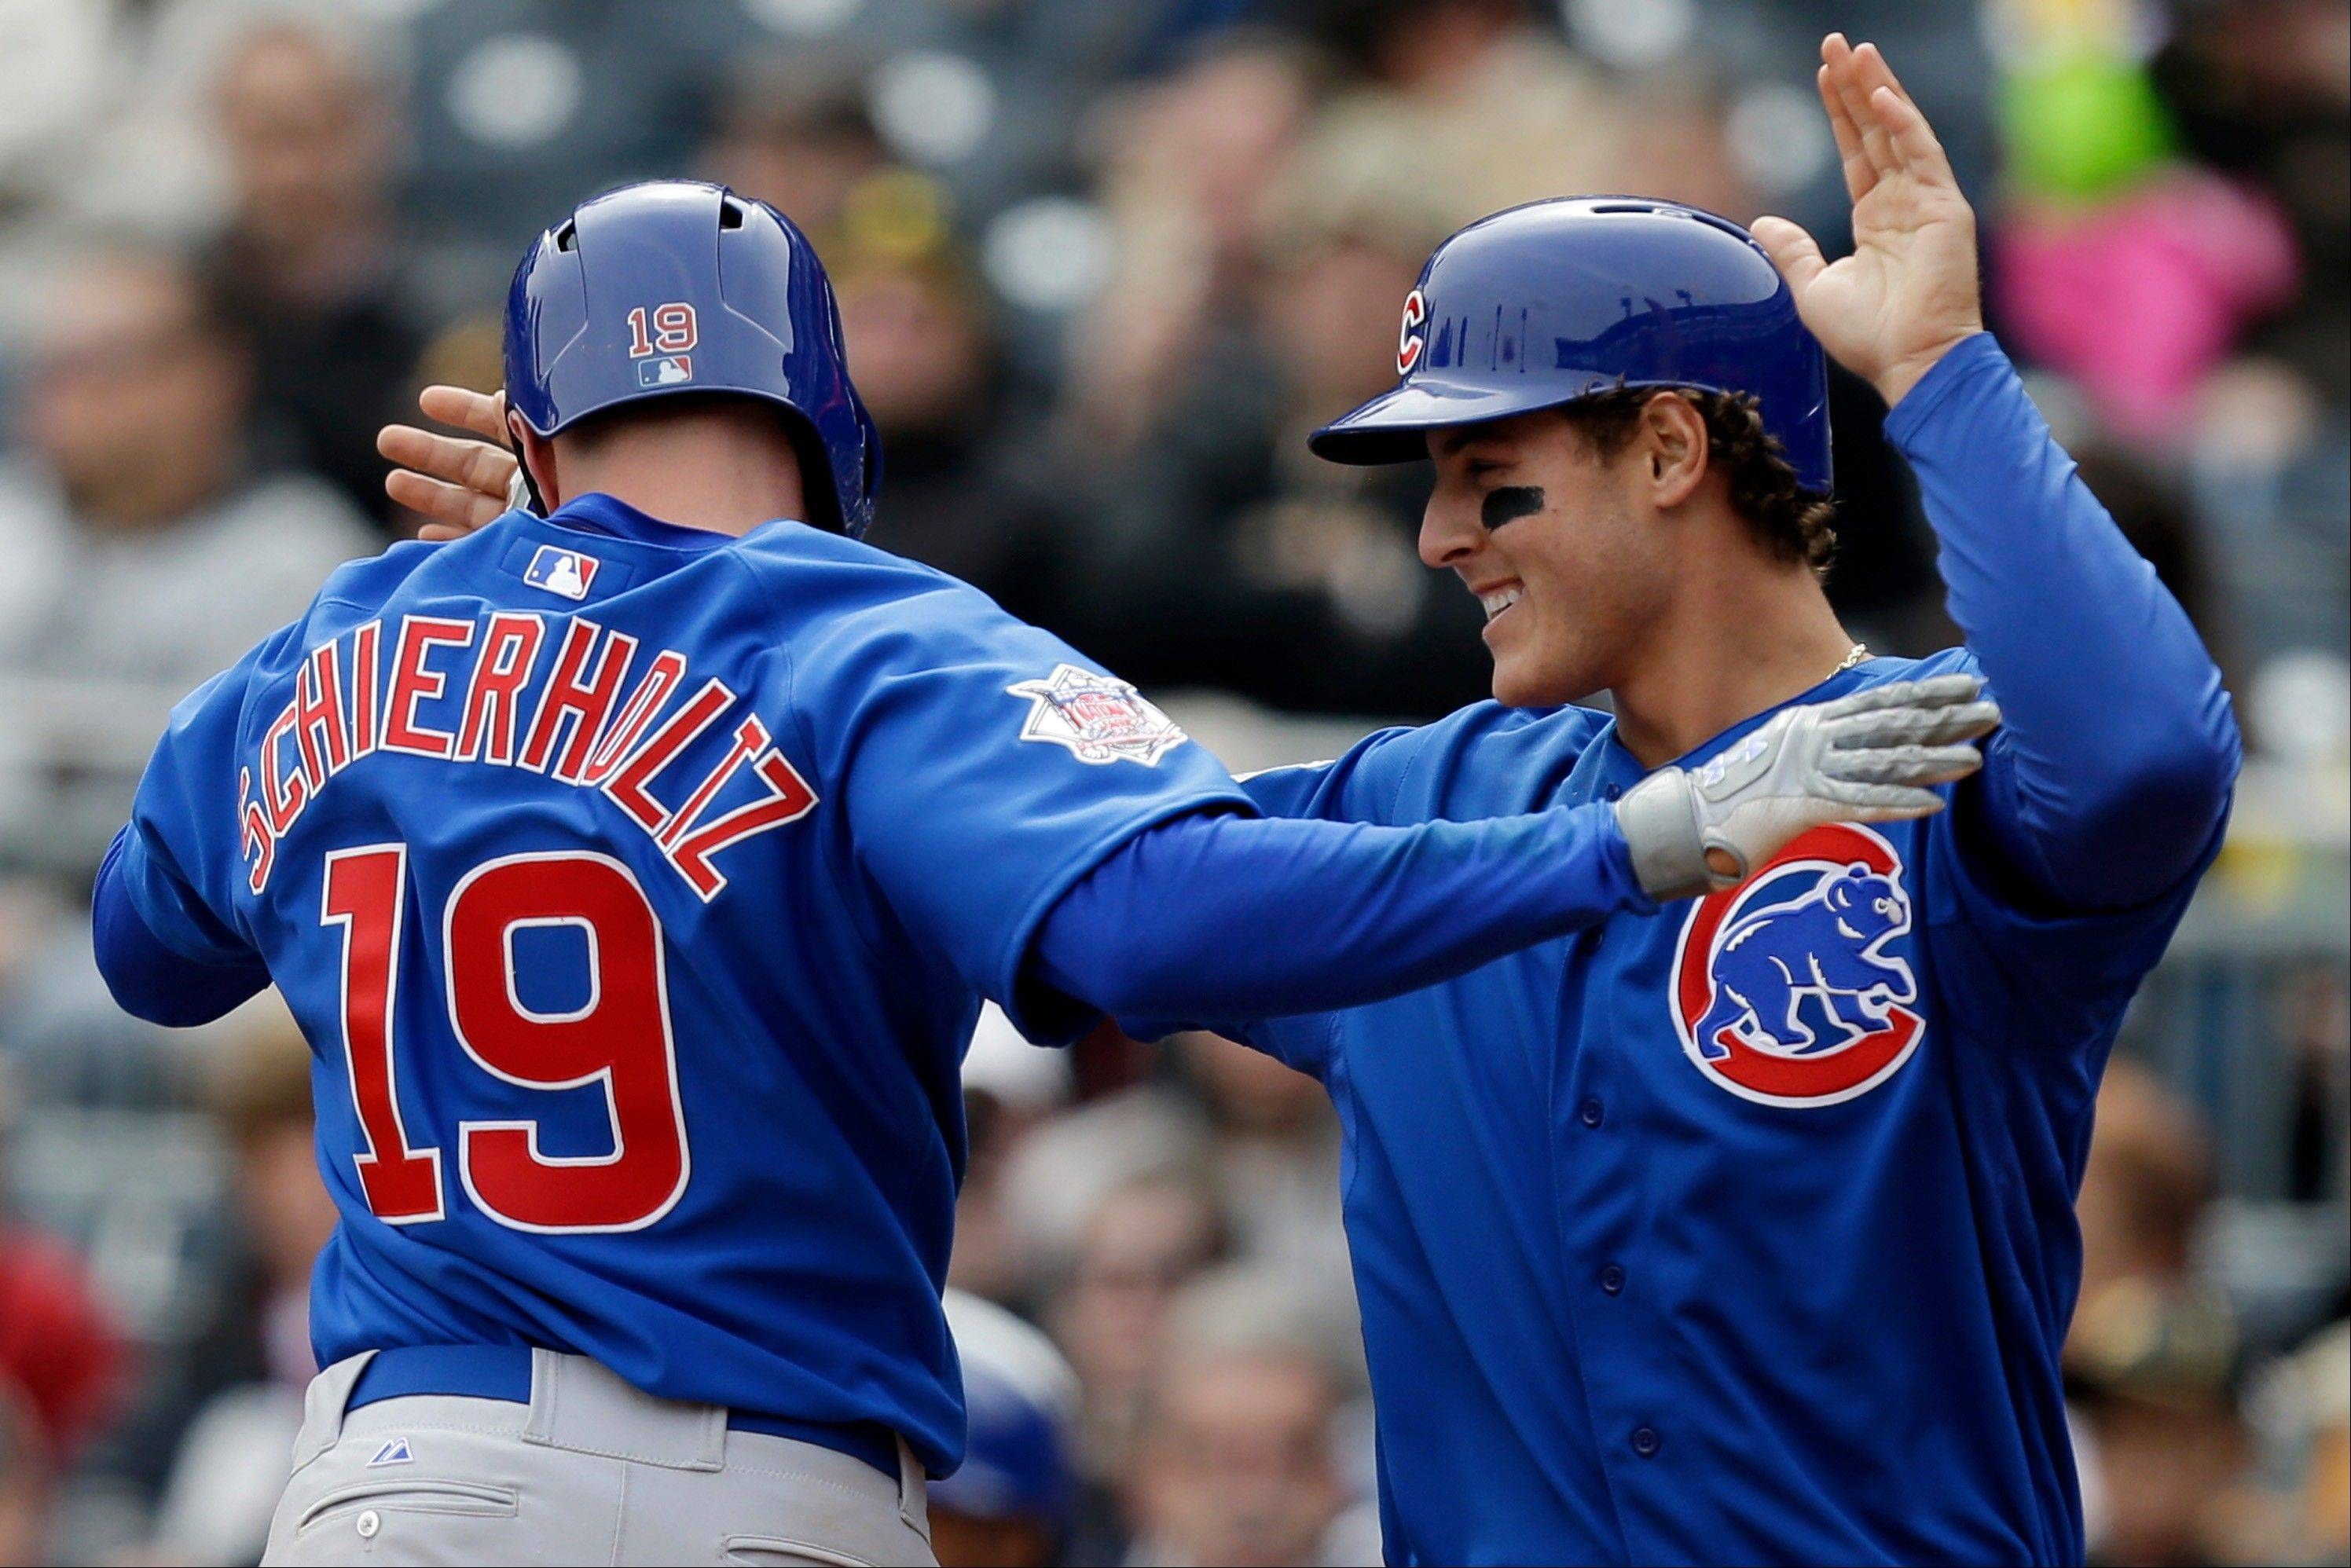 Cubs right fielder Nate Schierholtz (19) celebrates his two-run home run with teammate Anthony Rizzo during the ninth inning Thursday. The Cubs won 3-2.